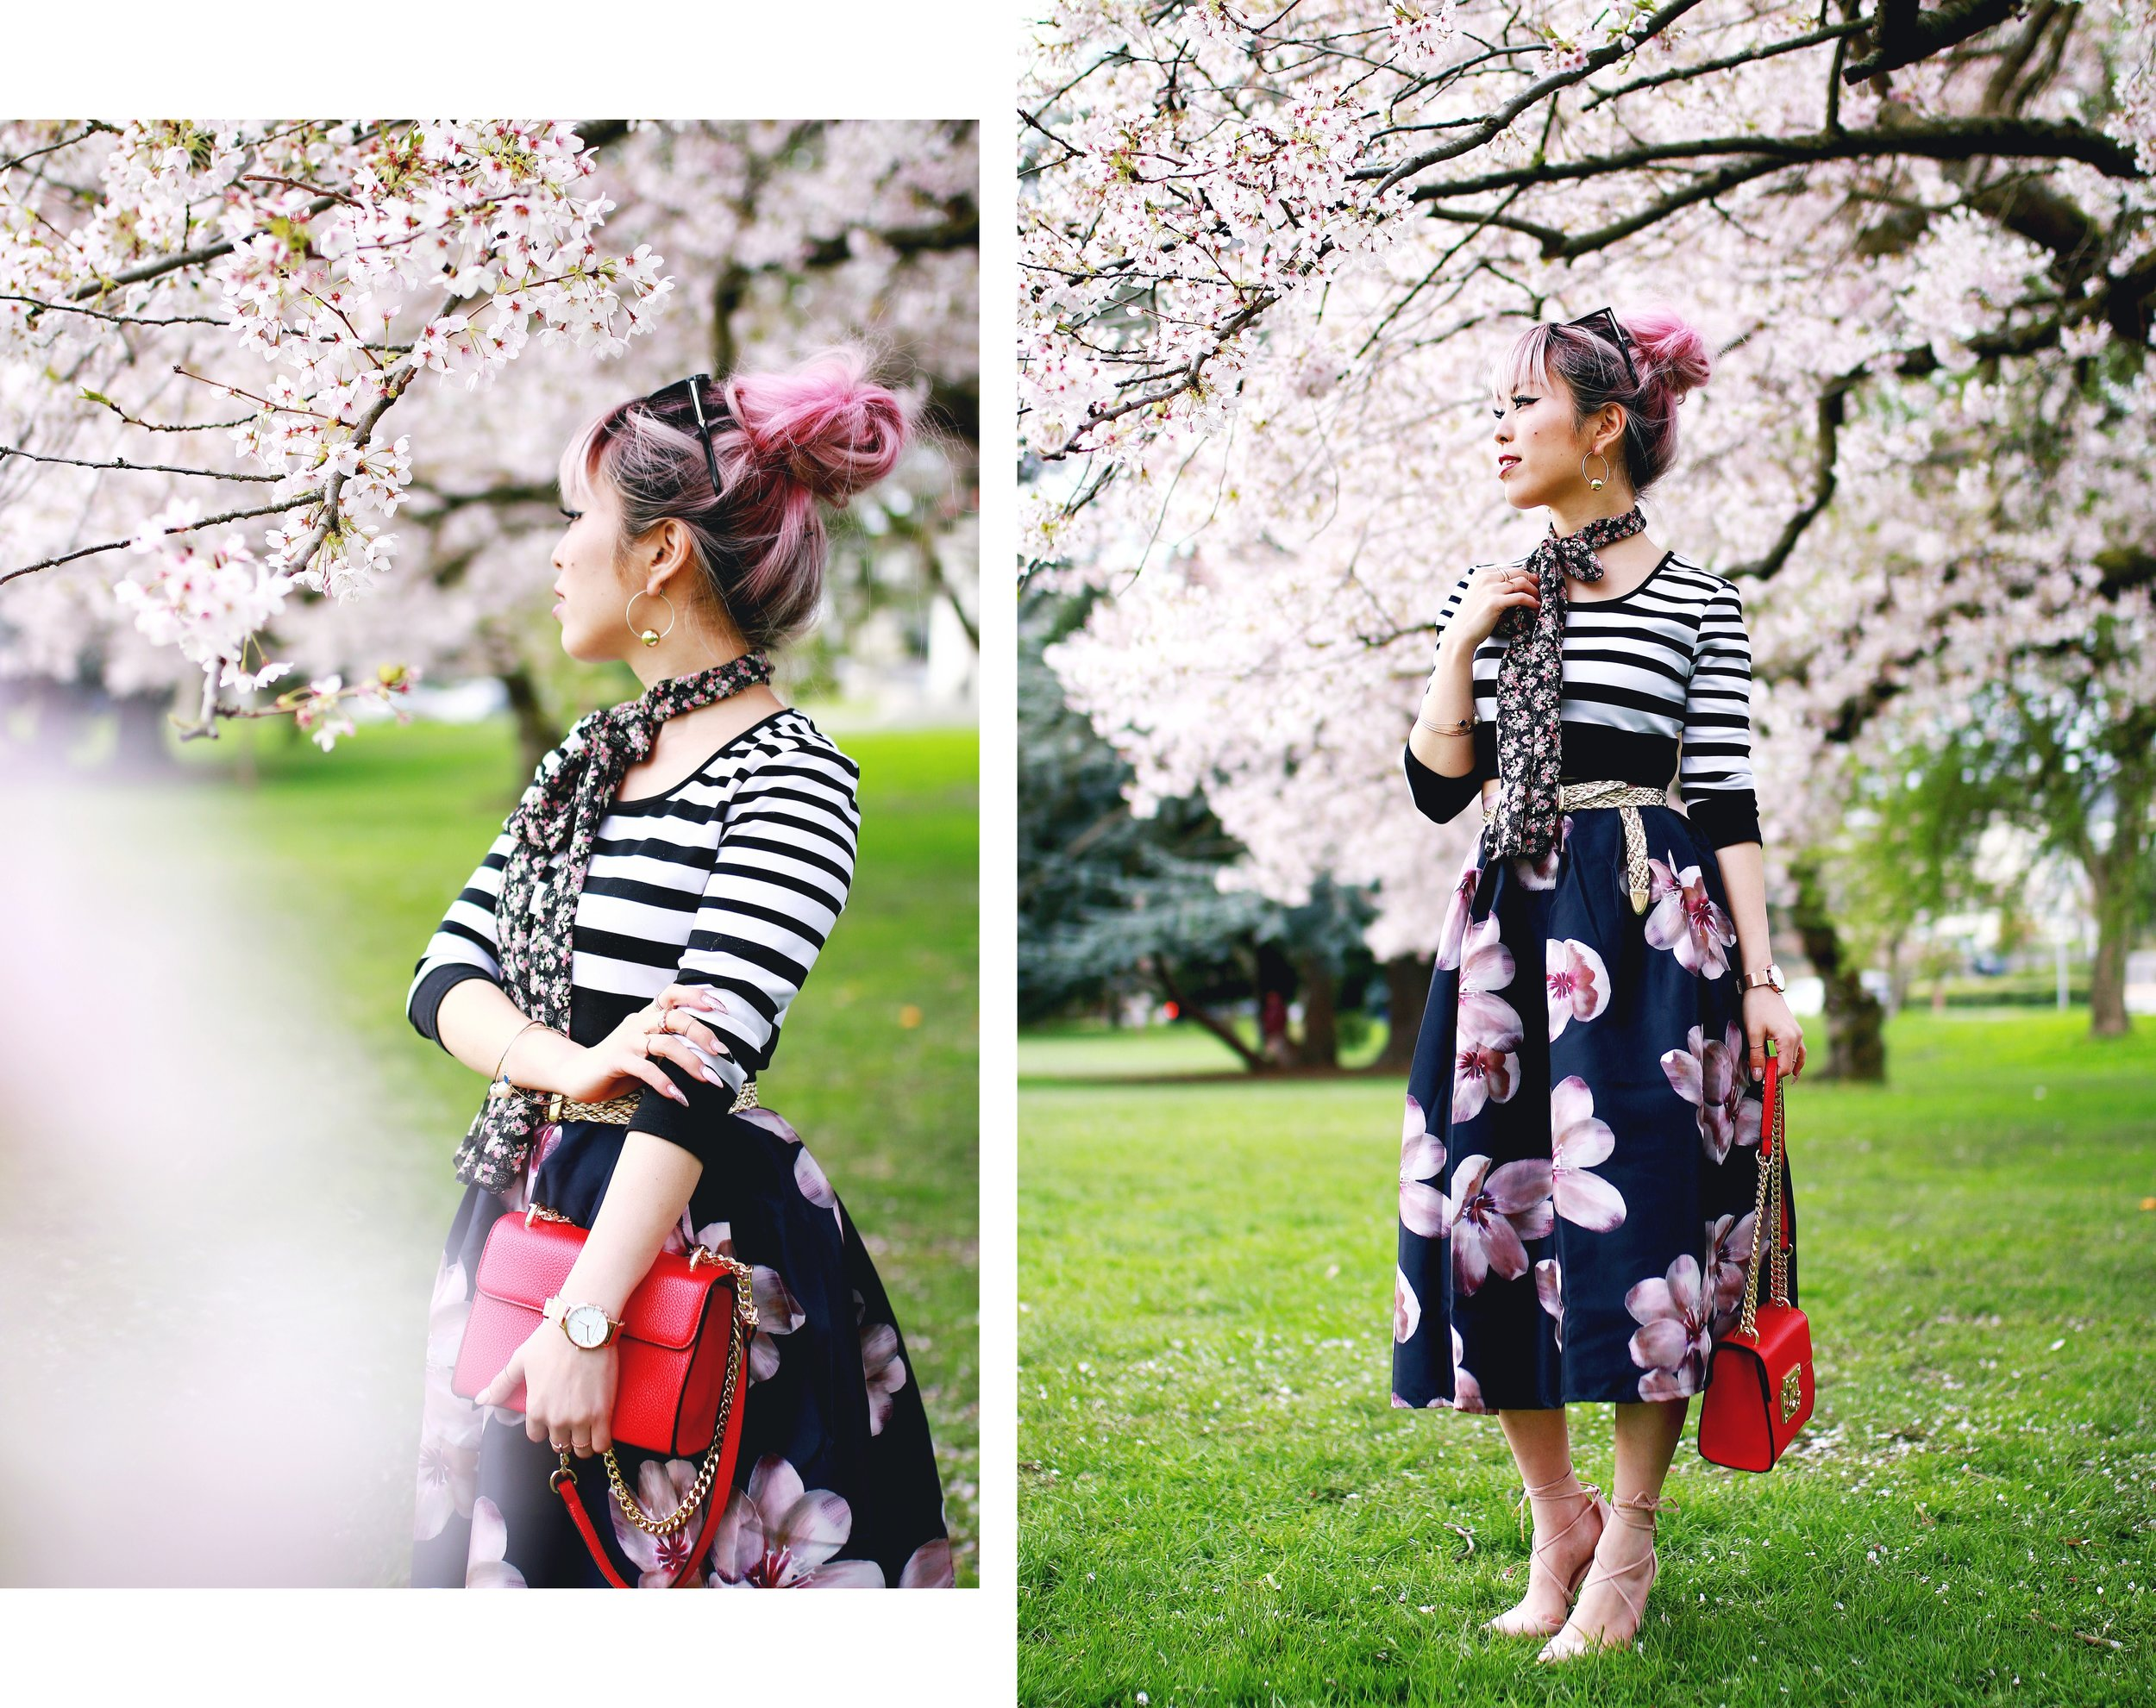 Charlotte Russe Striped Cropped Top-She In Floral Print Midi Skirt-Floral Print Think Scarf-Mellow World Red Mini Bag-Christian Paul 35MM ROSE GOLD/WHITE RAW MESH watch- Argento Vivo Earrings-Just Fab Lace up pumps- Aikas Love Closet-Seattle Fashion Style Blogger-Japanese-Pink hair 25